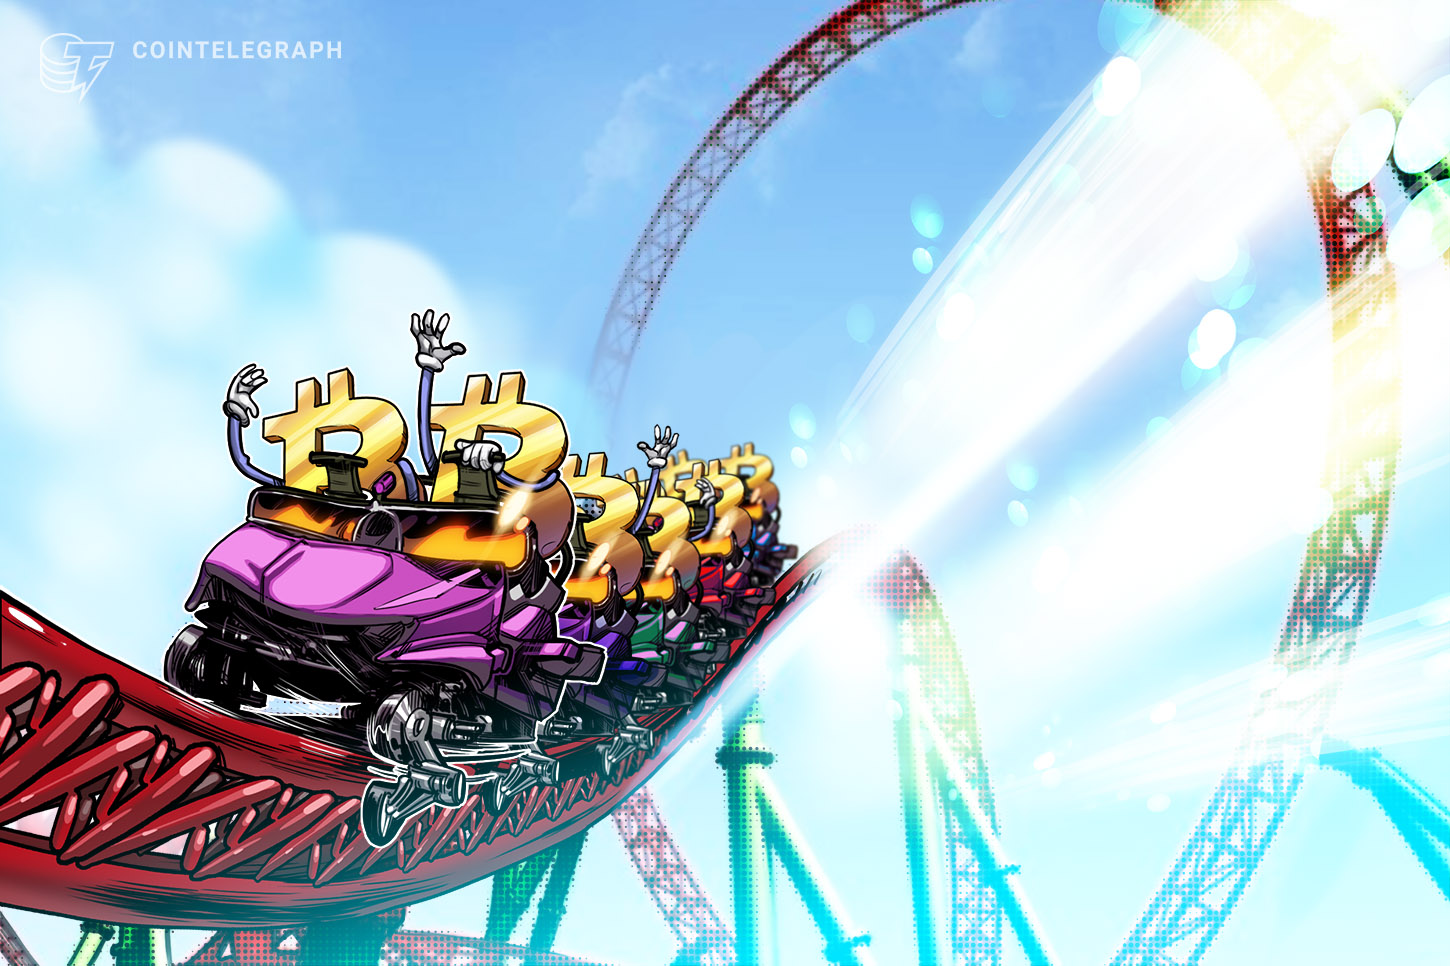 Deutsche Bank analyst: Bitcoin will be 'ultra-volatile,' but it's here to stay